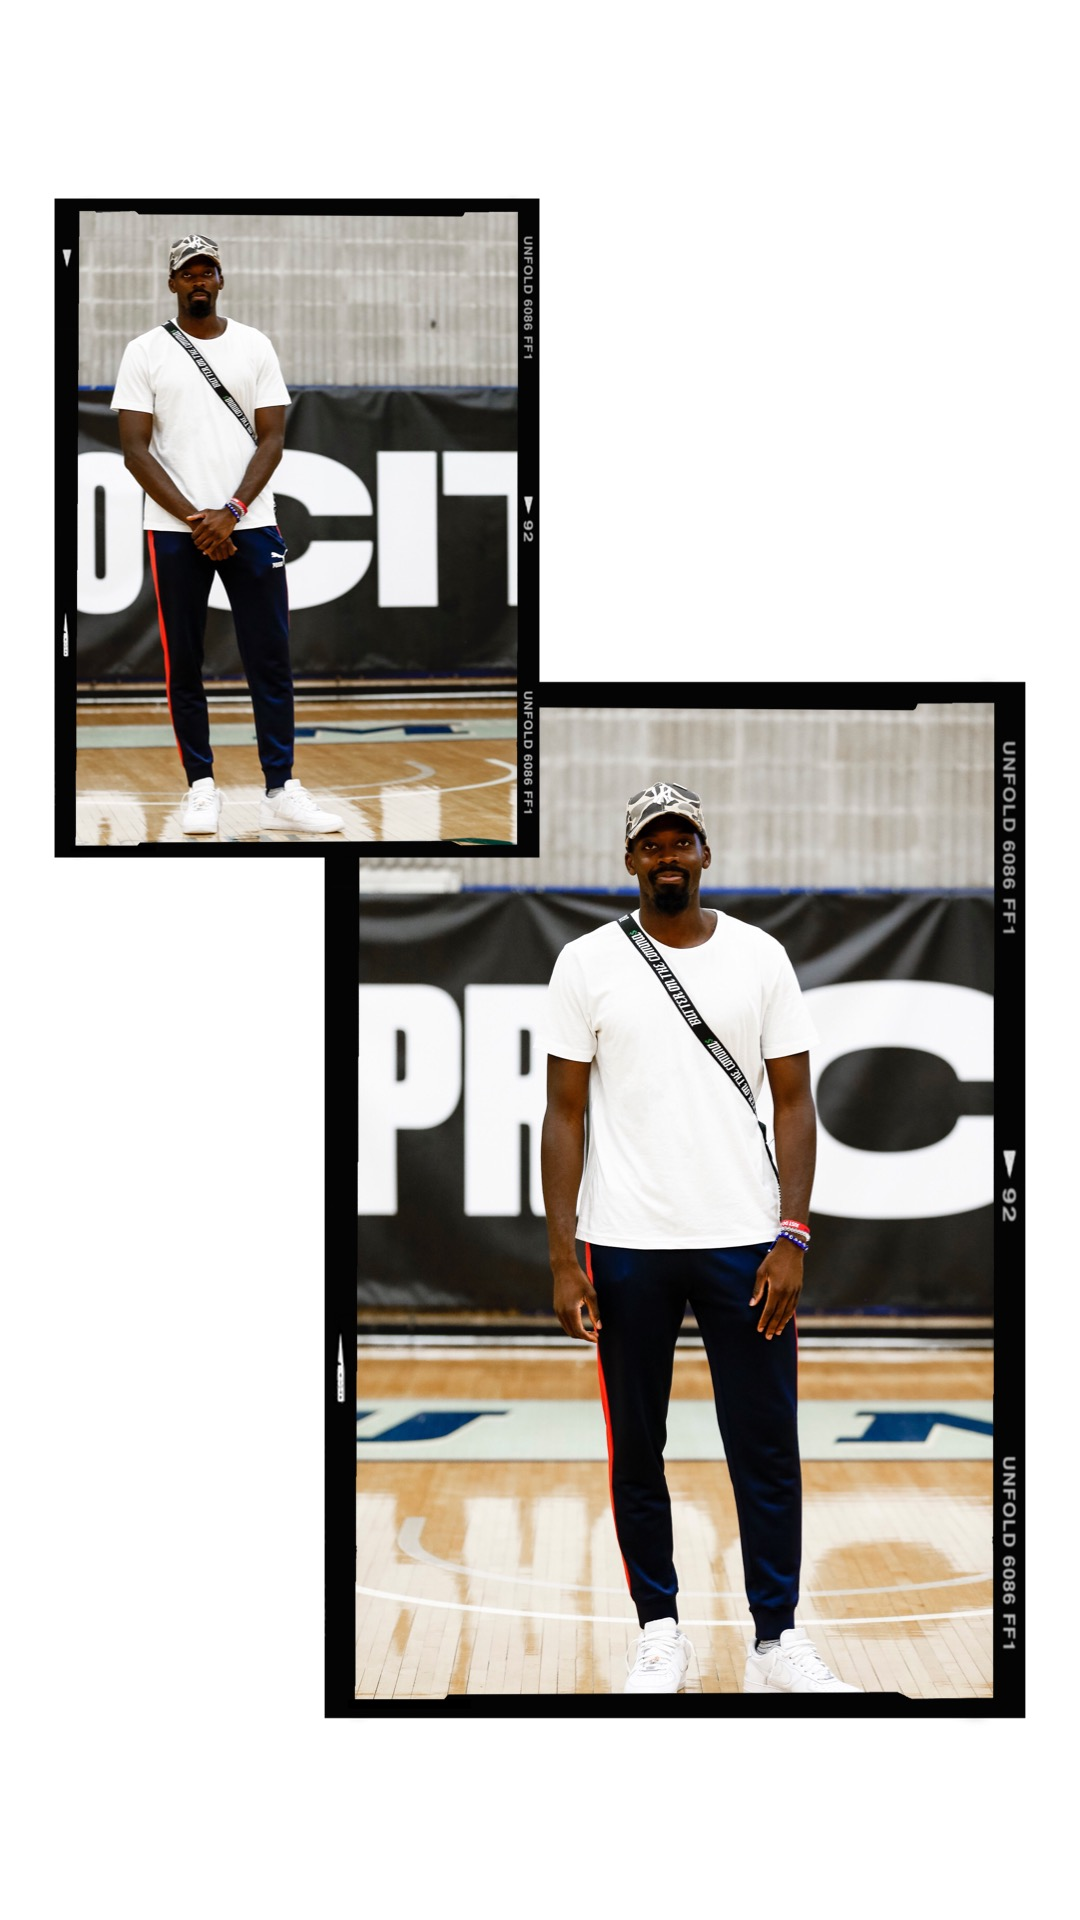 Founder of TGQ Inc. Hussein A. at Nike's Pro-city NYC. ( Photo by: @nicolesweetsports, ) ( Graphic by:@pvkhrajs )